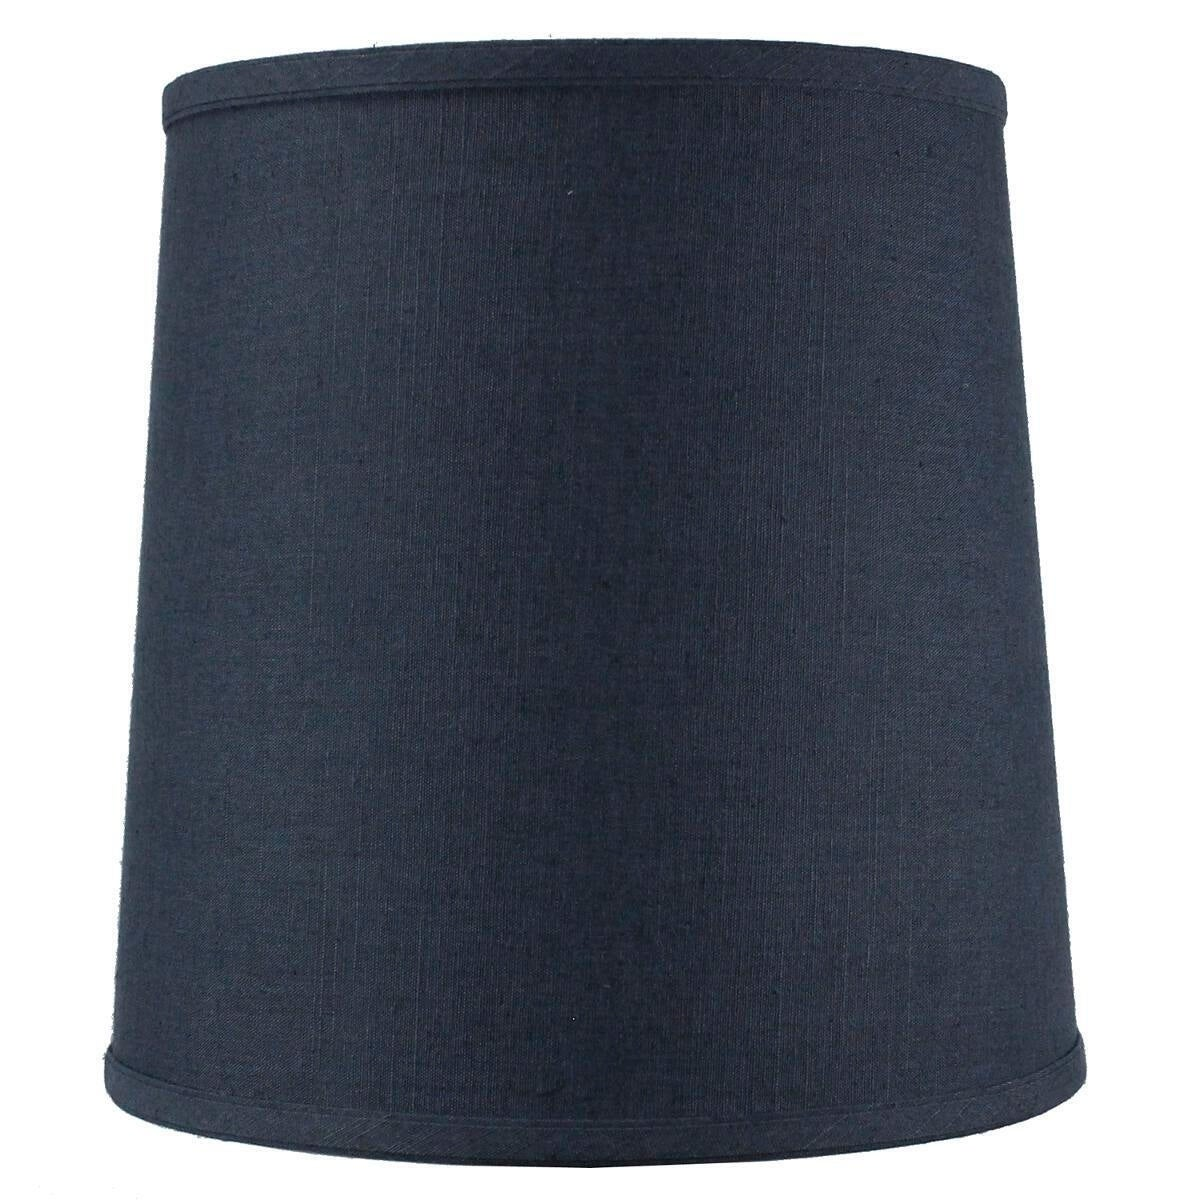 Concept Textured Slate Blue Drum Shantung Shade (Fabric)